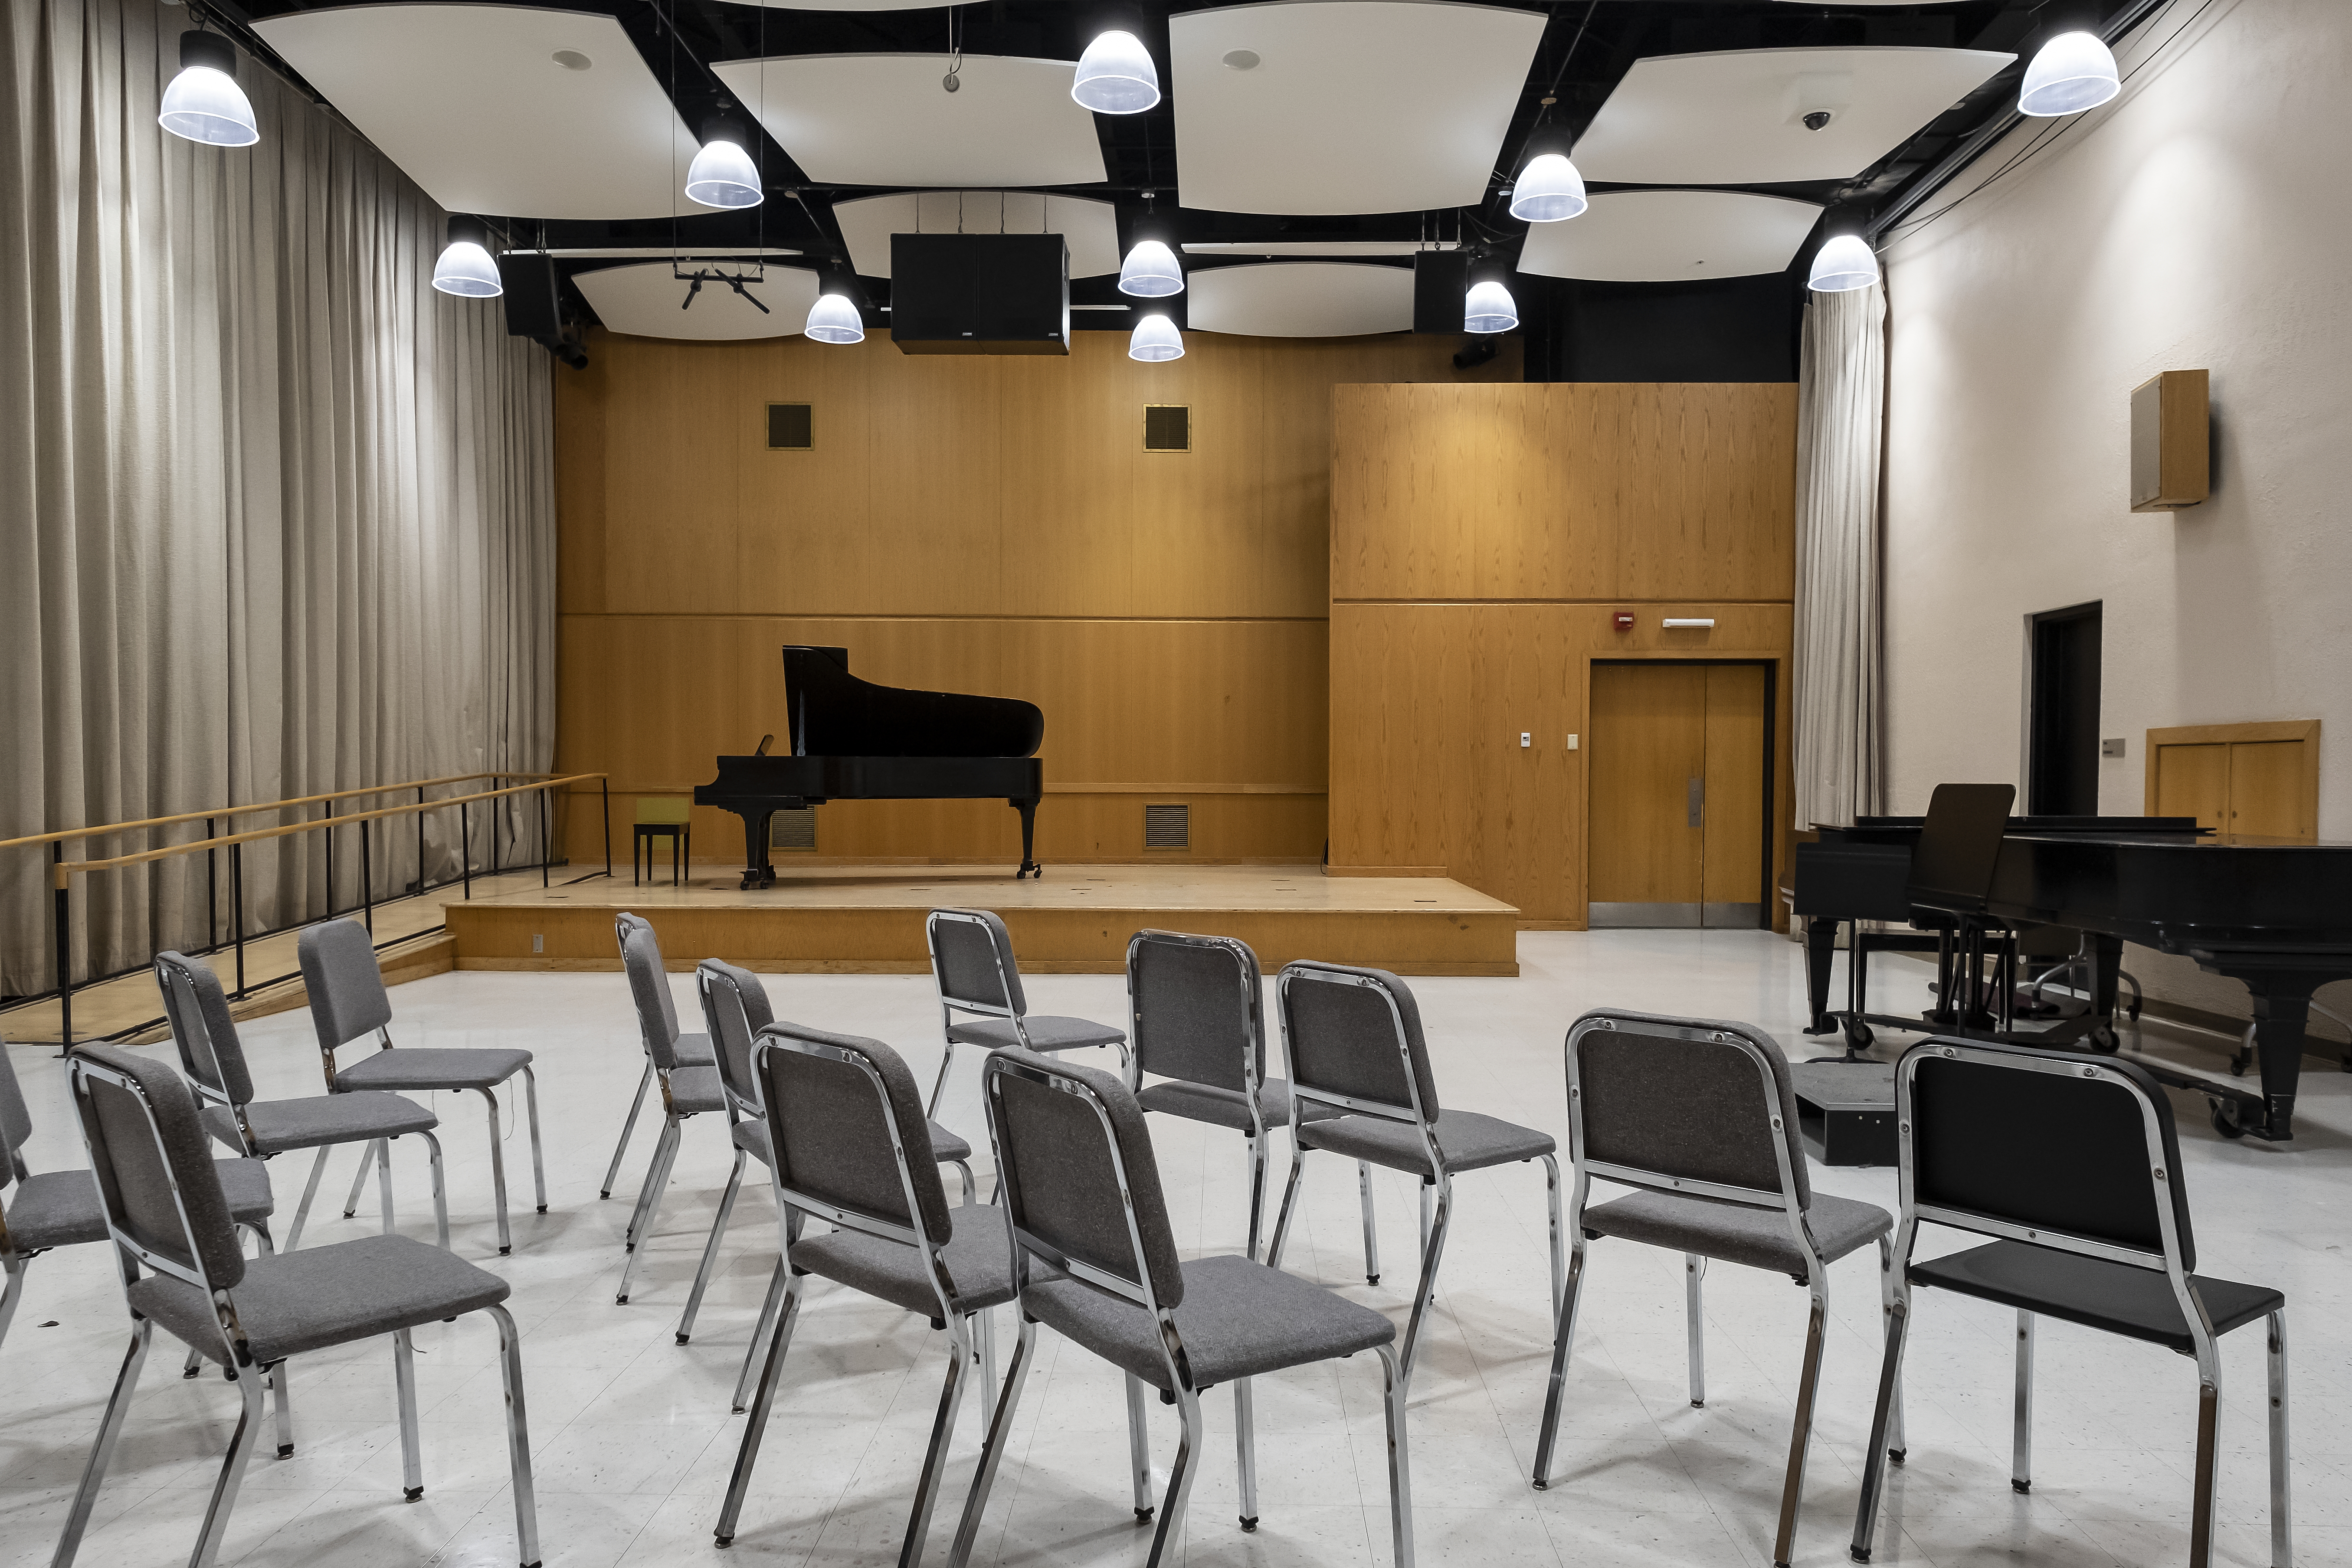 Rehearsal room with two grand pianos, gray chairs set in three rows